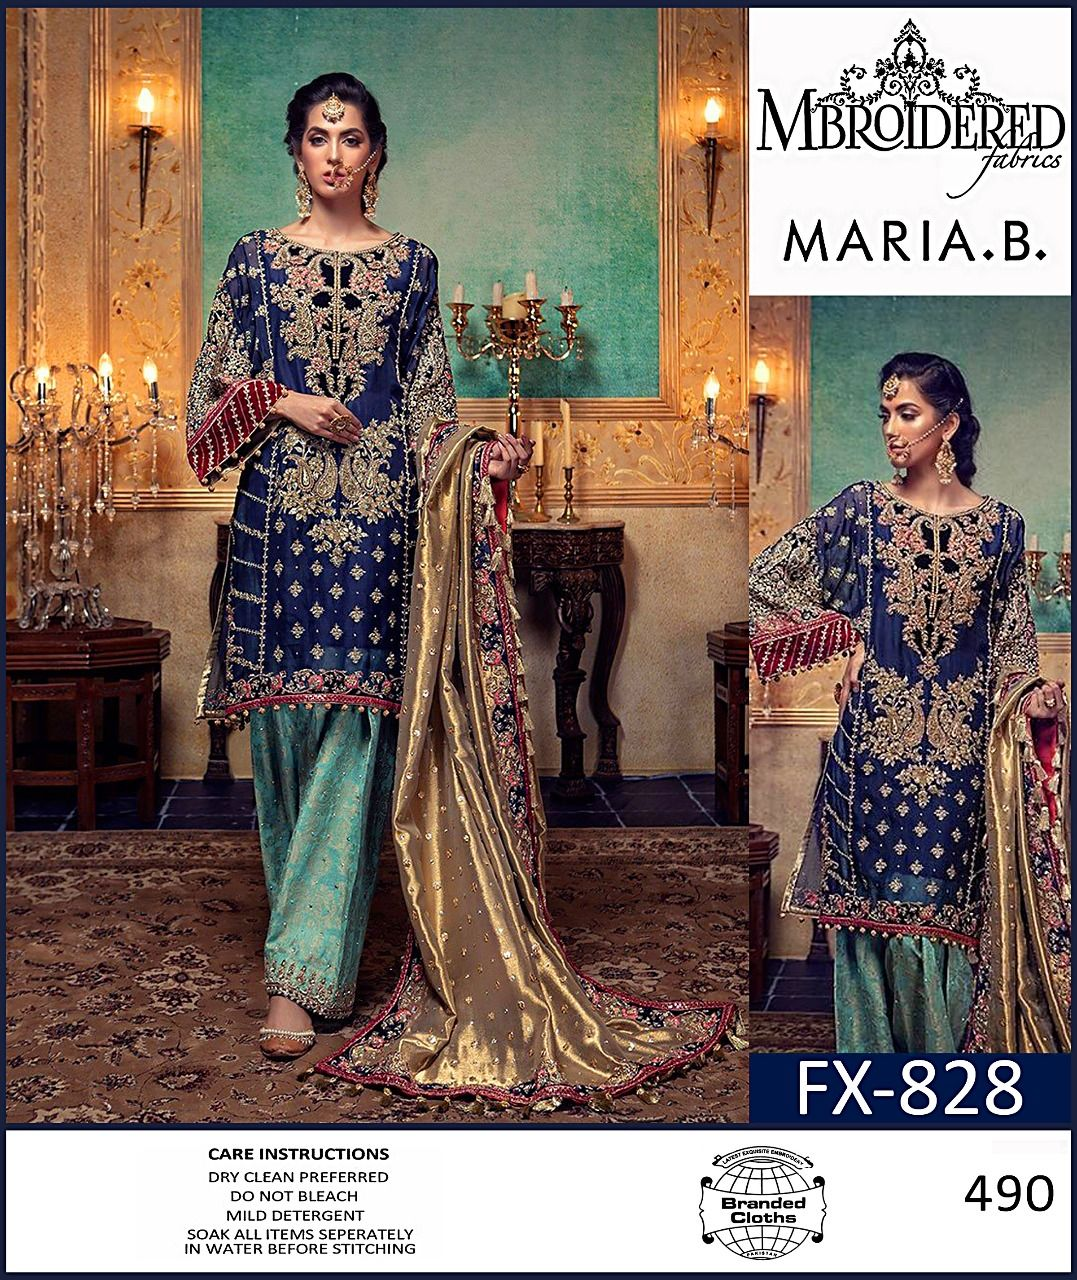 91840292a27dc Brand Maria.B Available in lawn Master Replica fabrics 3pc!! Front full  heavy Embroidered panel Chiffon dupatta Trouser printed For Order:Whatapp  ...